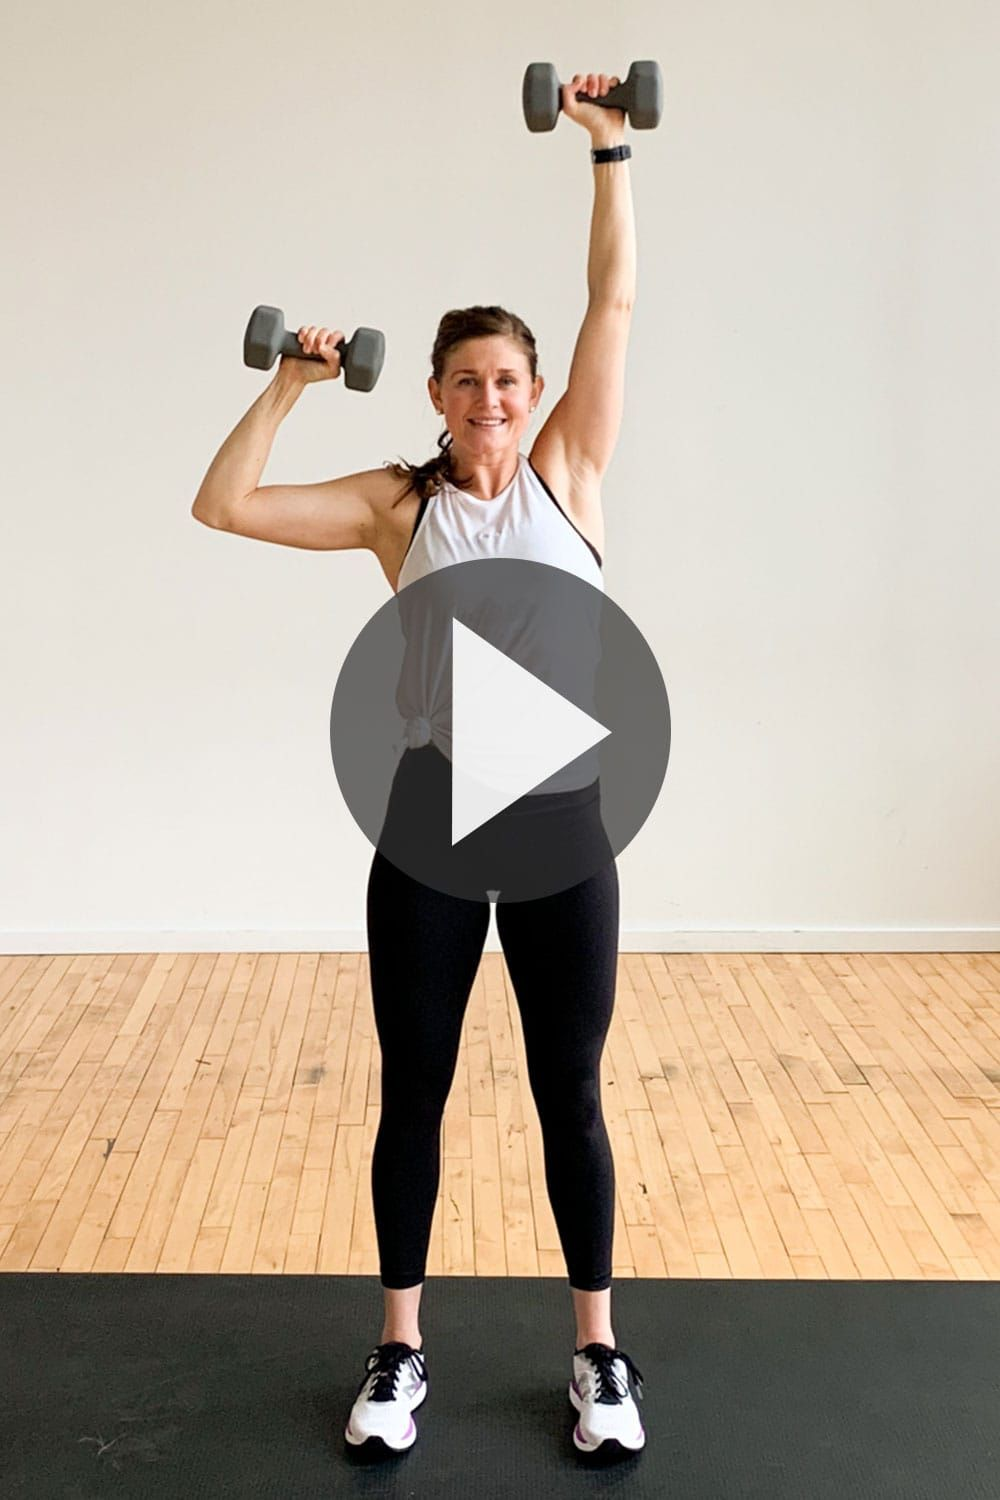 30-Minute Upper Body HIIT Workout for Women #cardiopilates